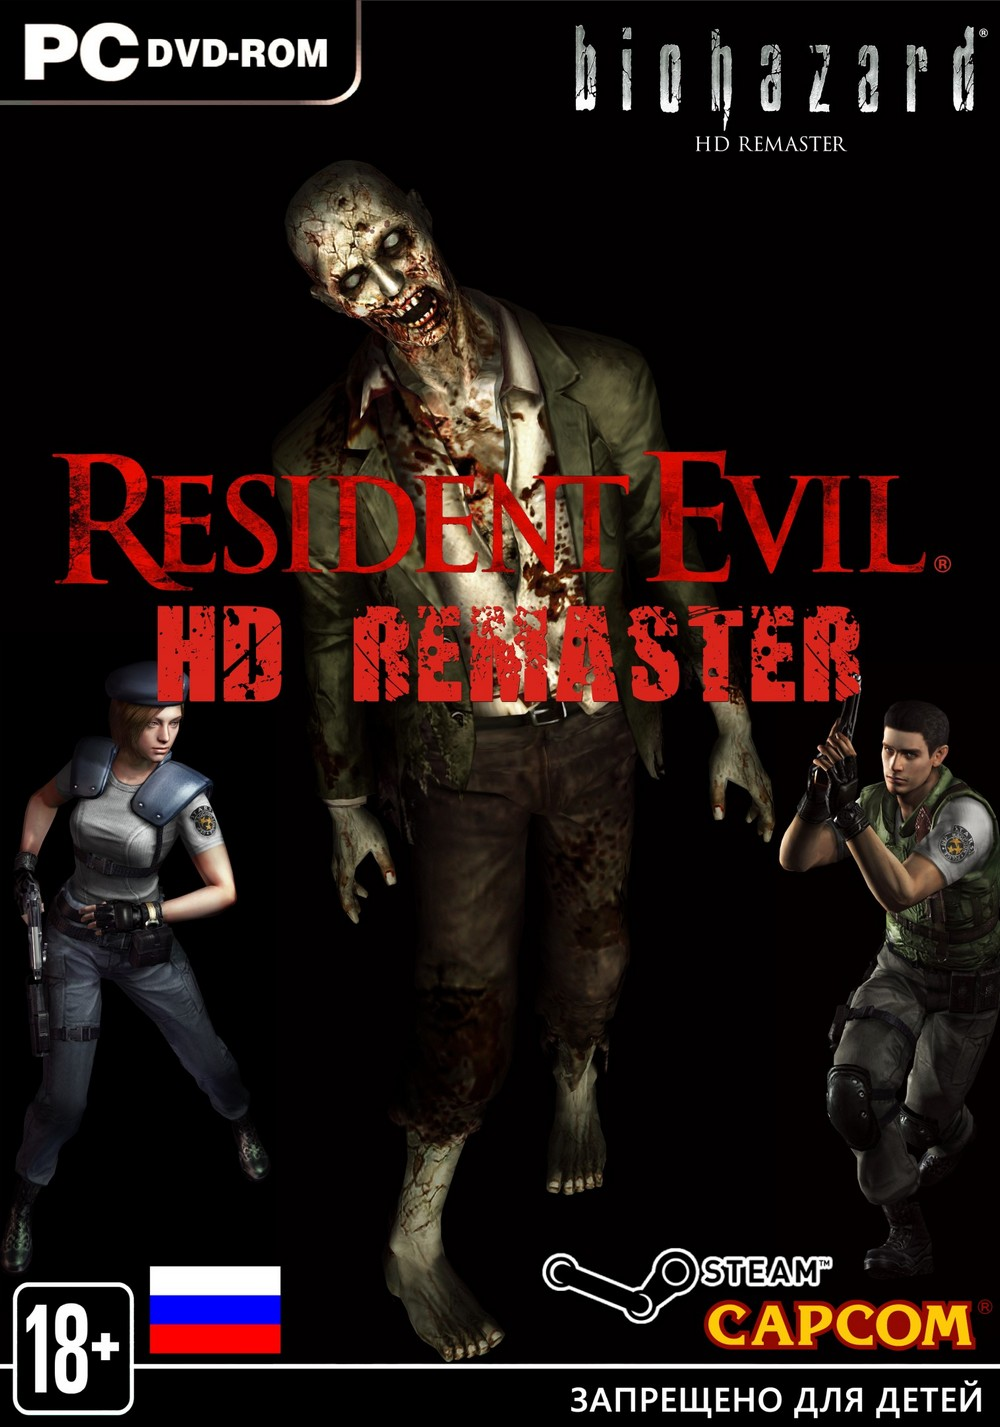 Resident Evil Hd Remaster Rus Repack By Seyter Download Games Movies Software Torrent Free